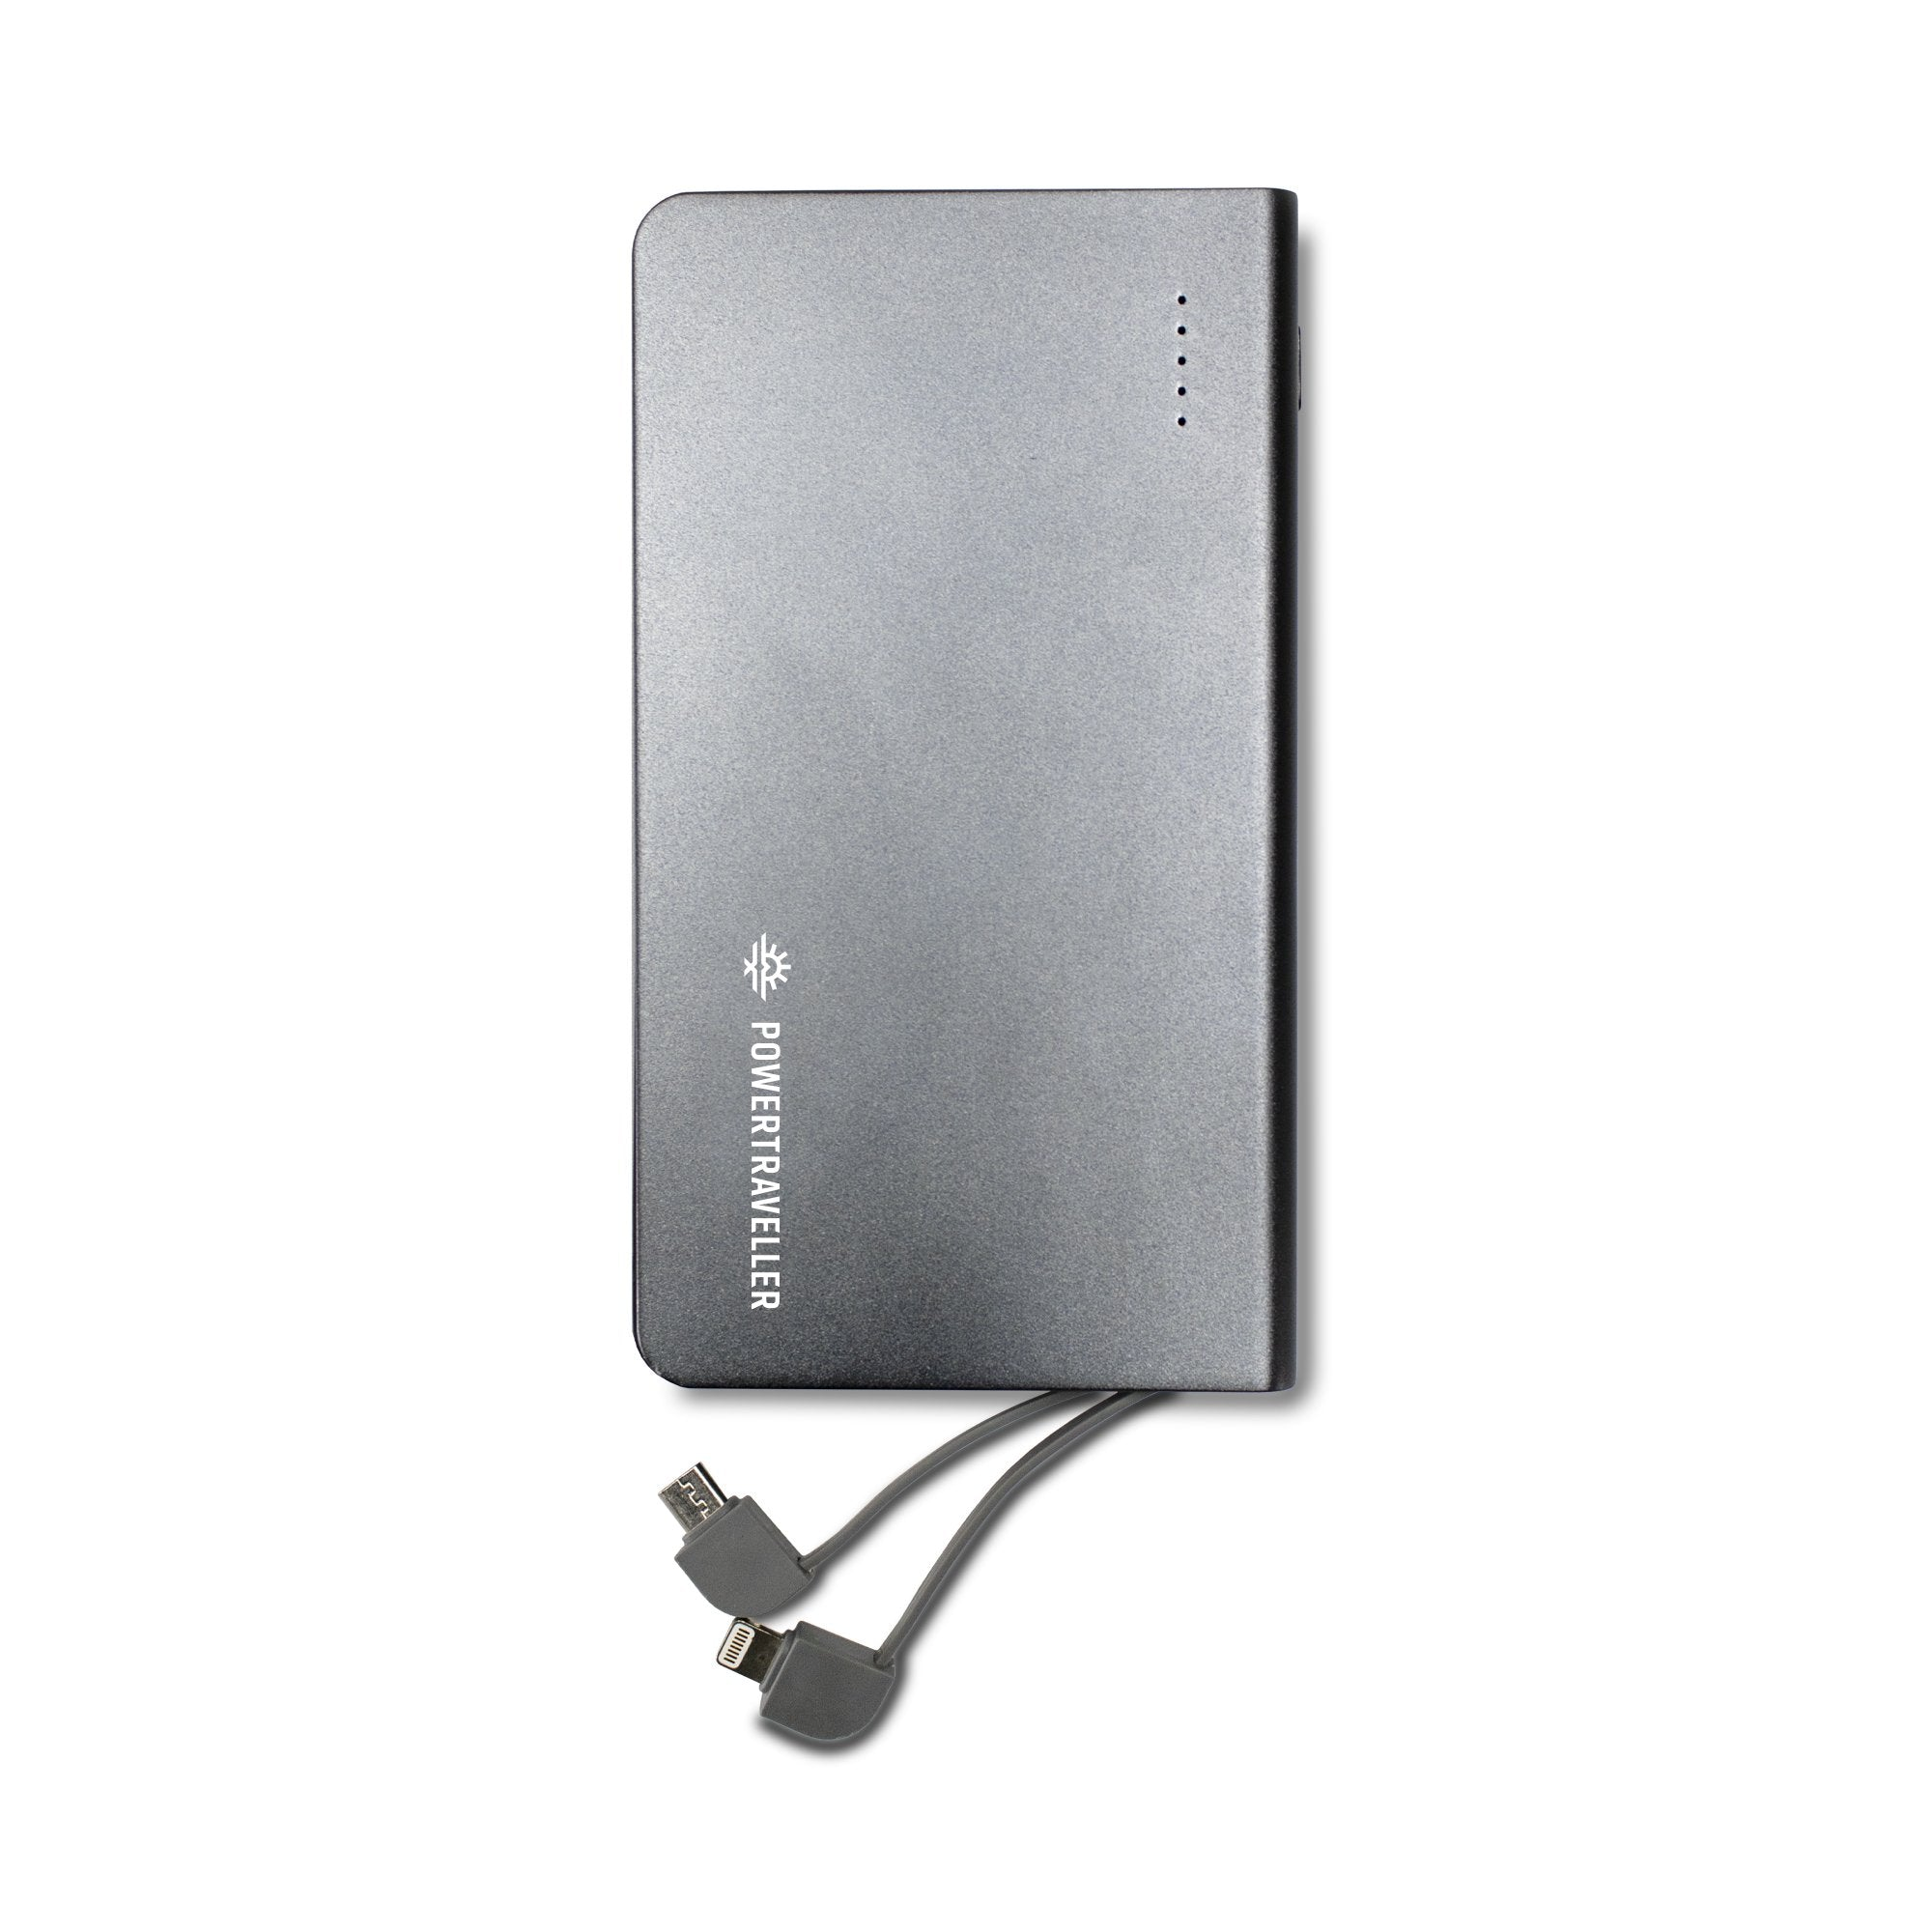 Swift 40 - Portable Power Pack